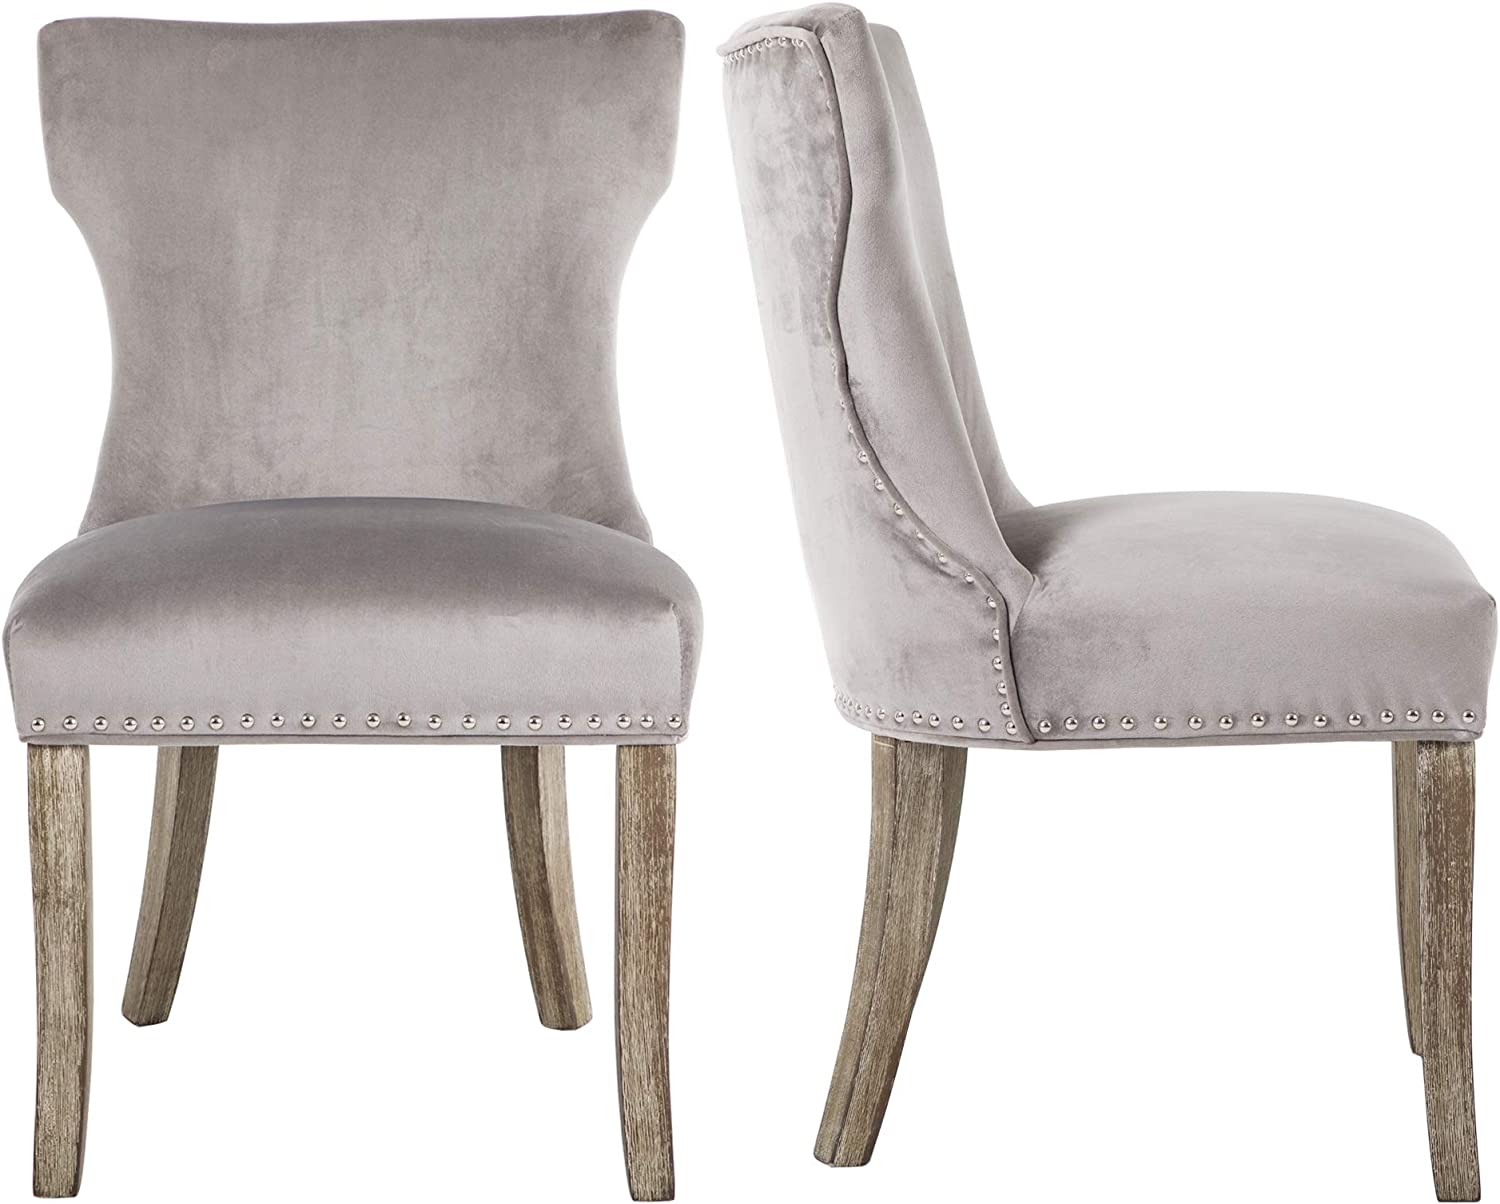 DAGONHIL Dining Chair Button Tufted Armless Chair Upholstered Accent Chair with Brown Solid Wooden Legs,Nailed Trim,Set of 2 Gray